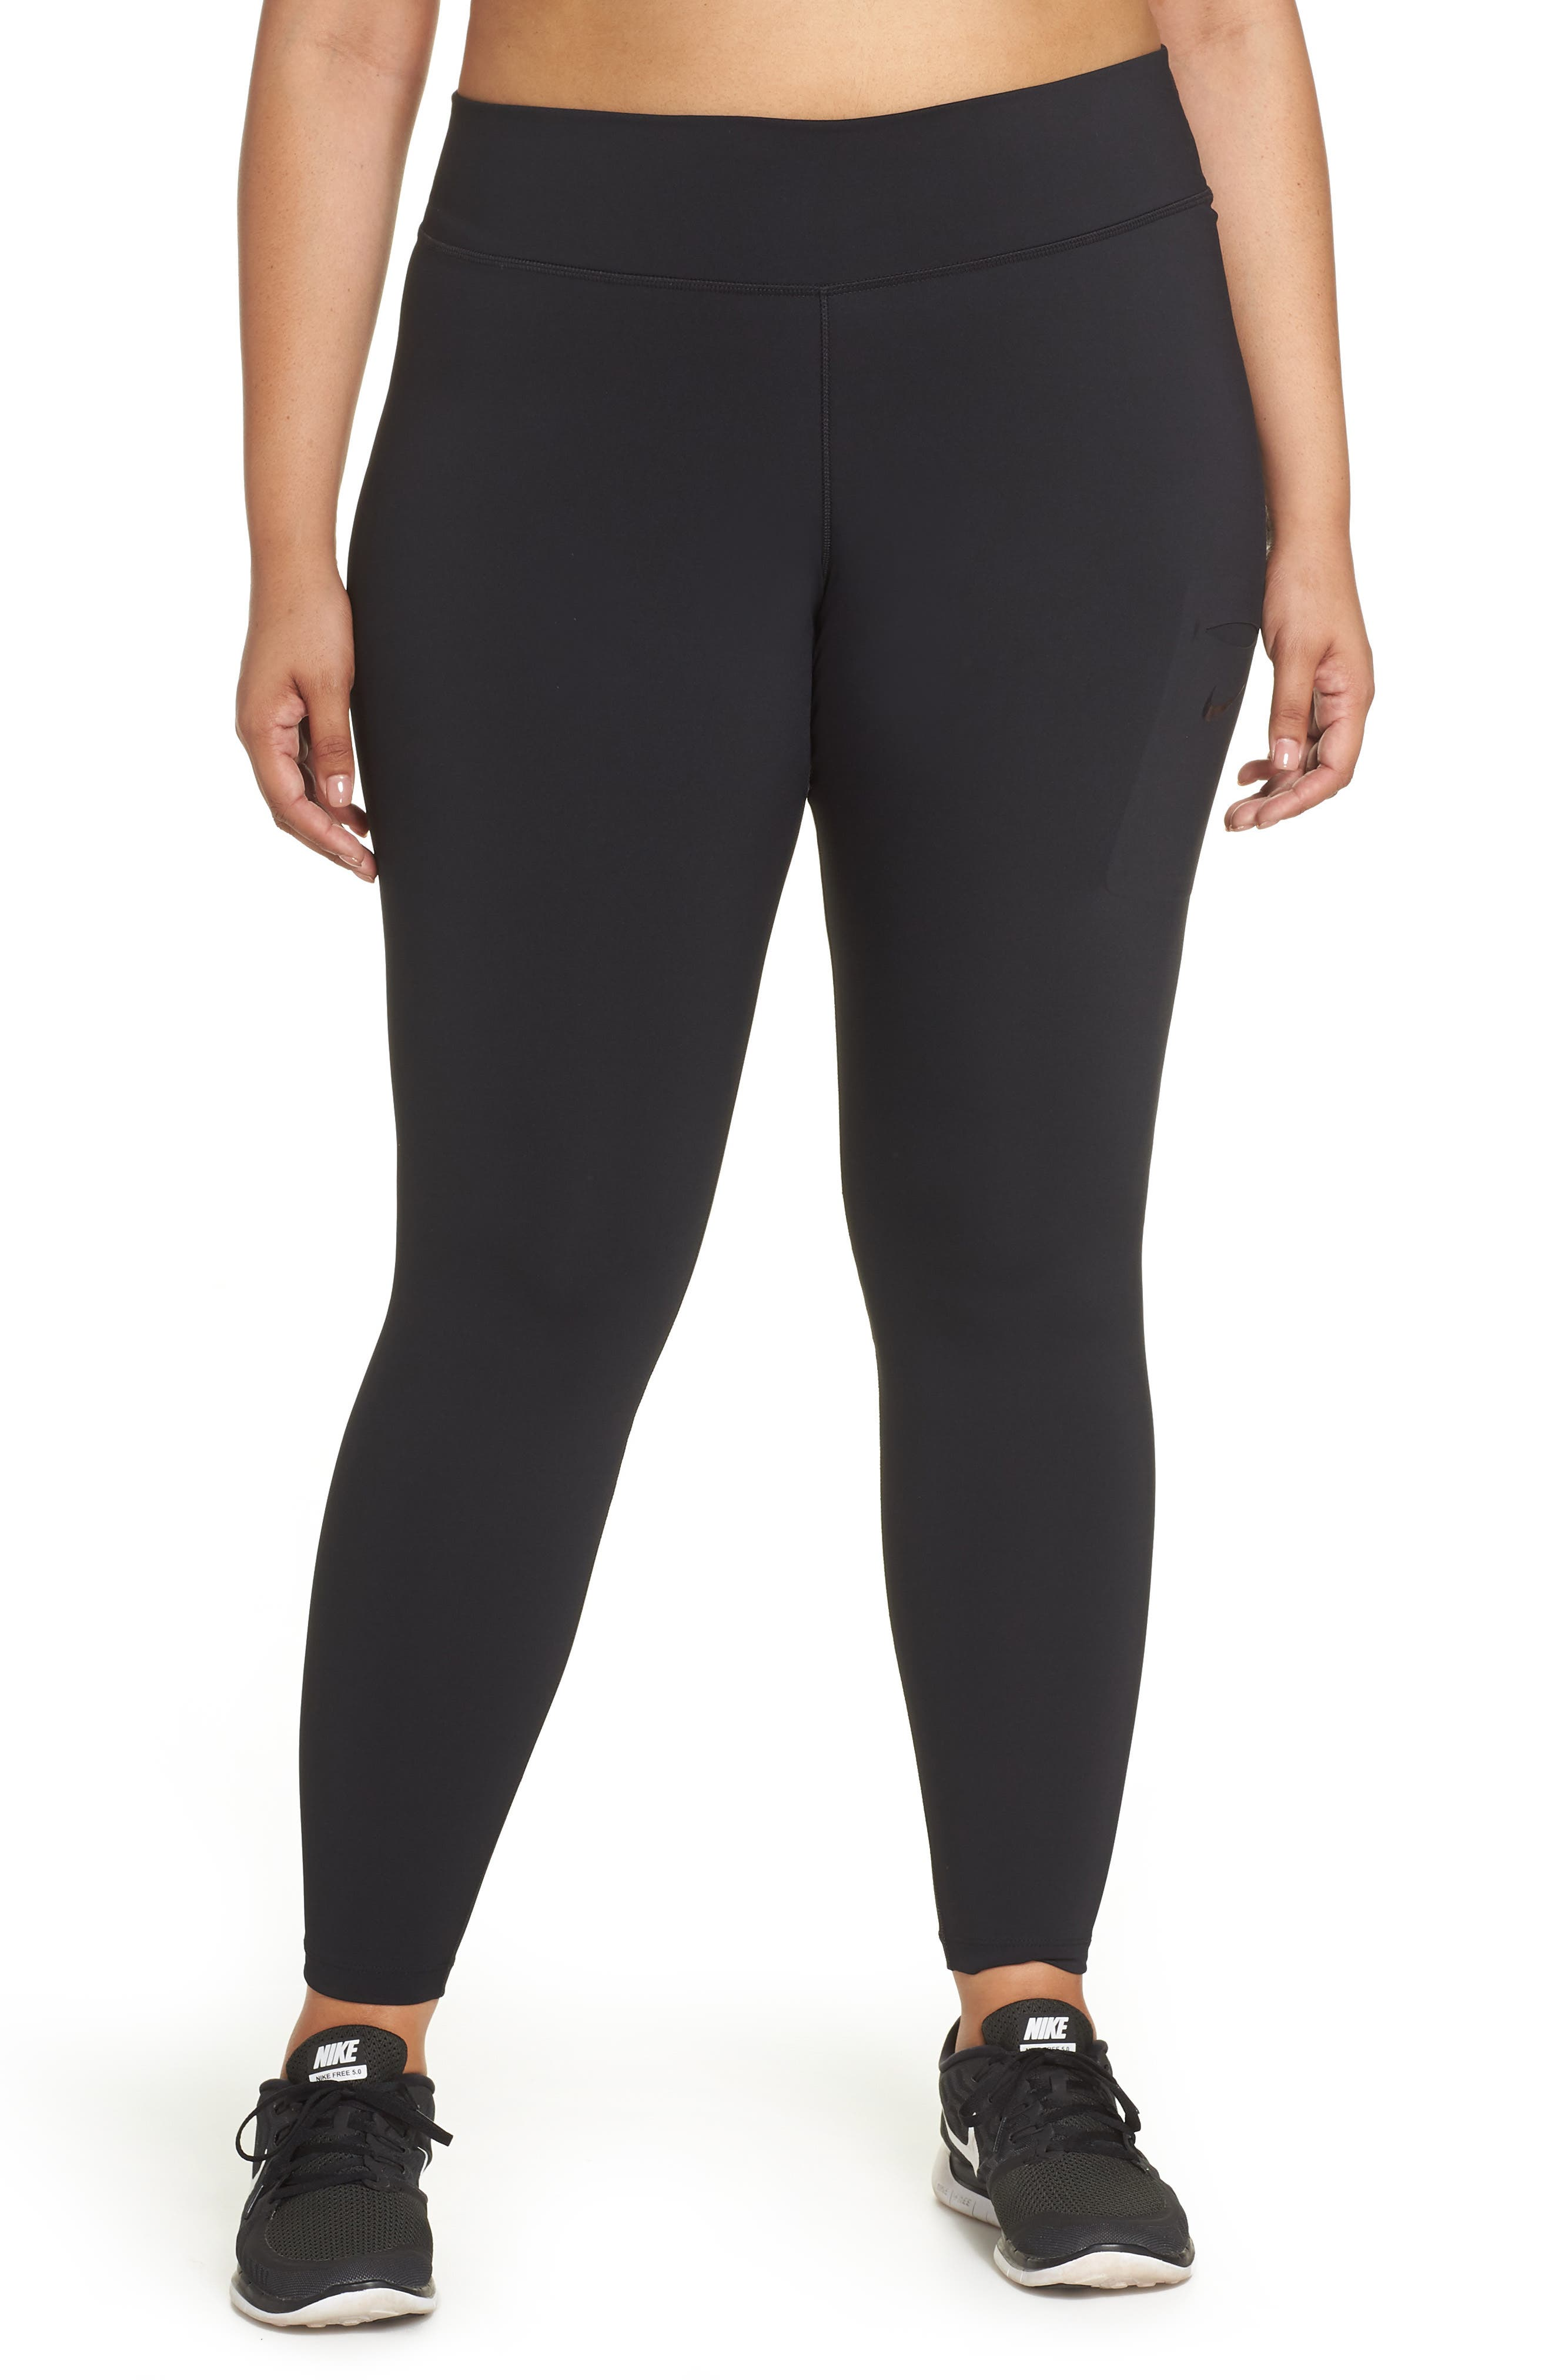 Plus Size Nike Power Training Tights